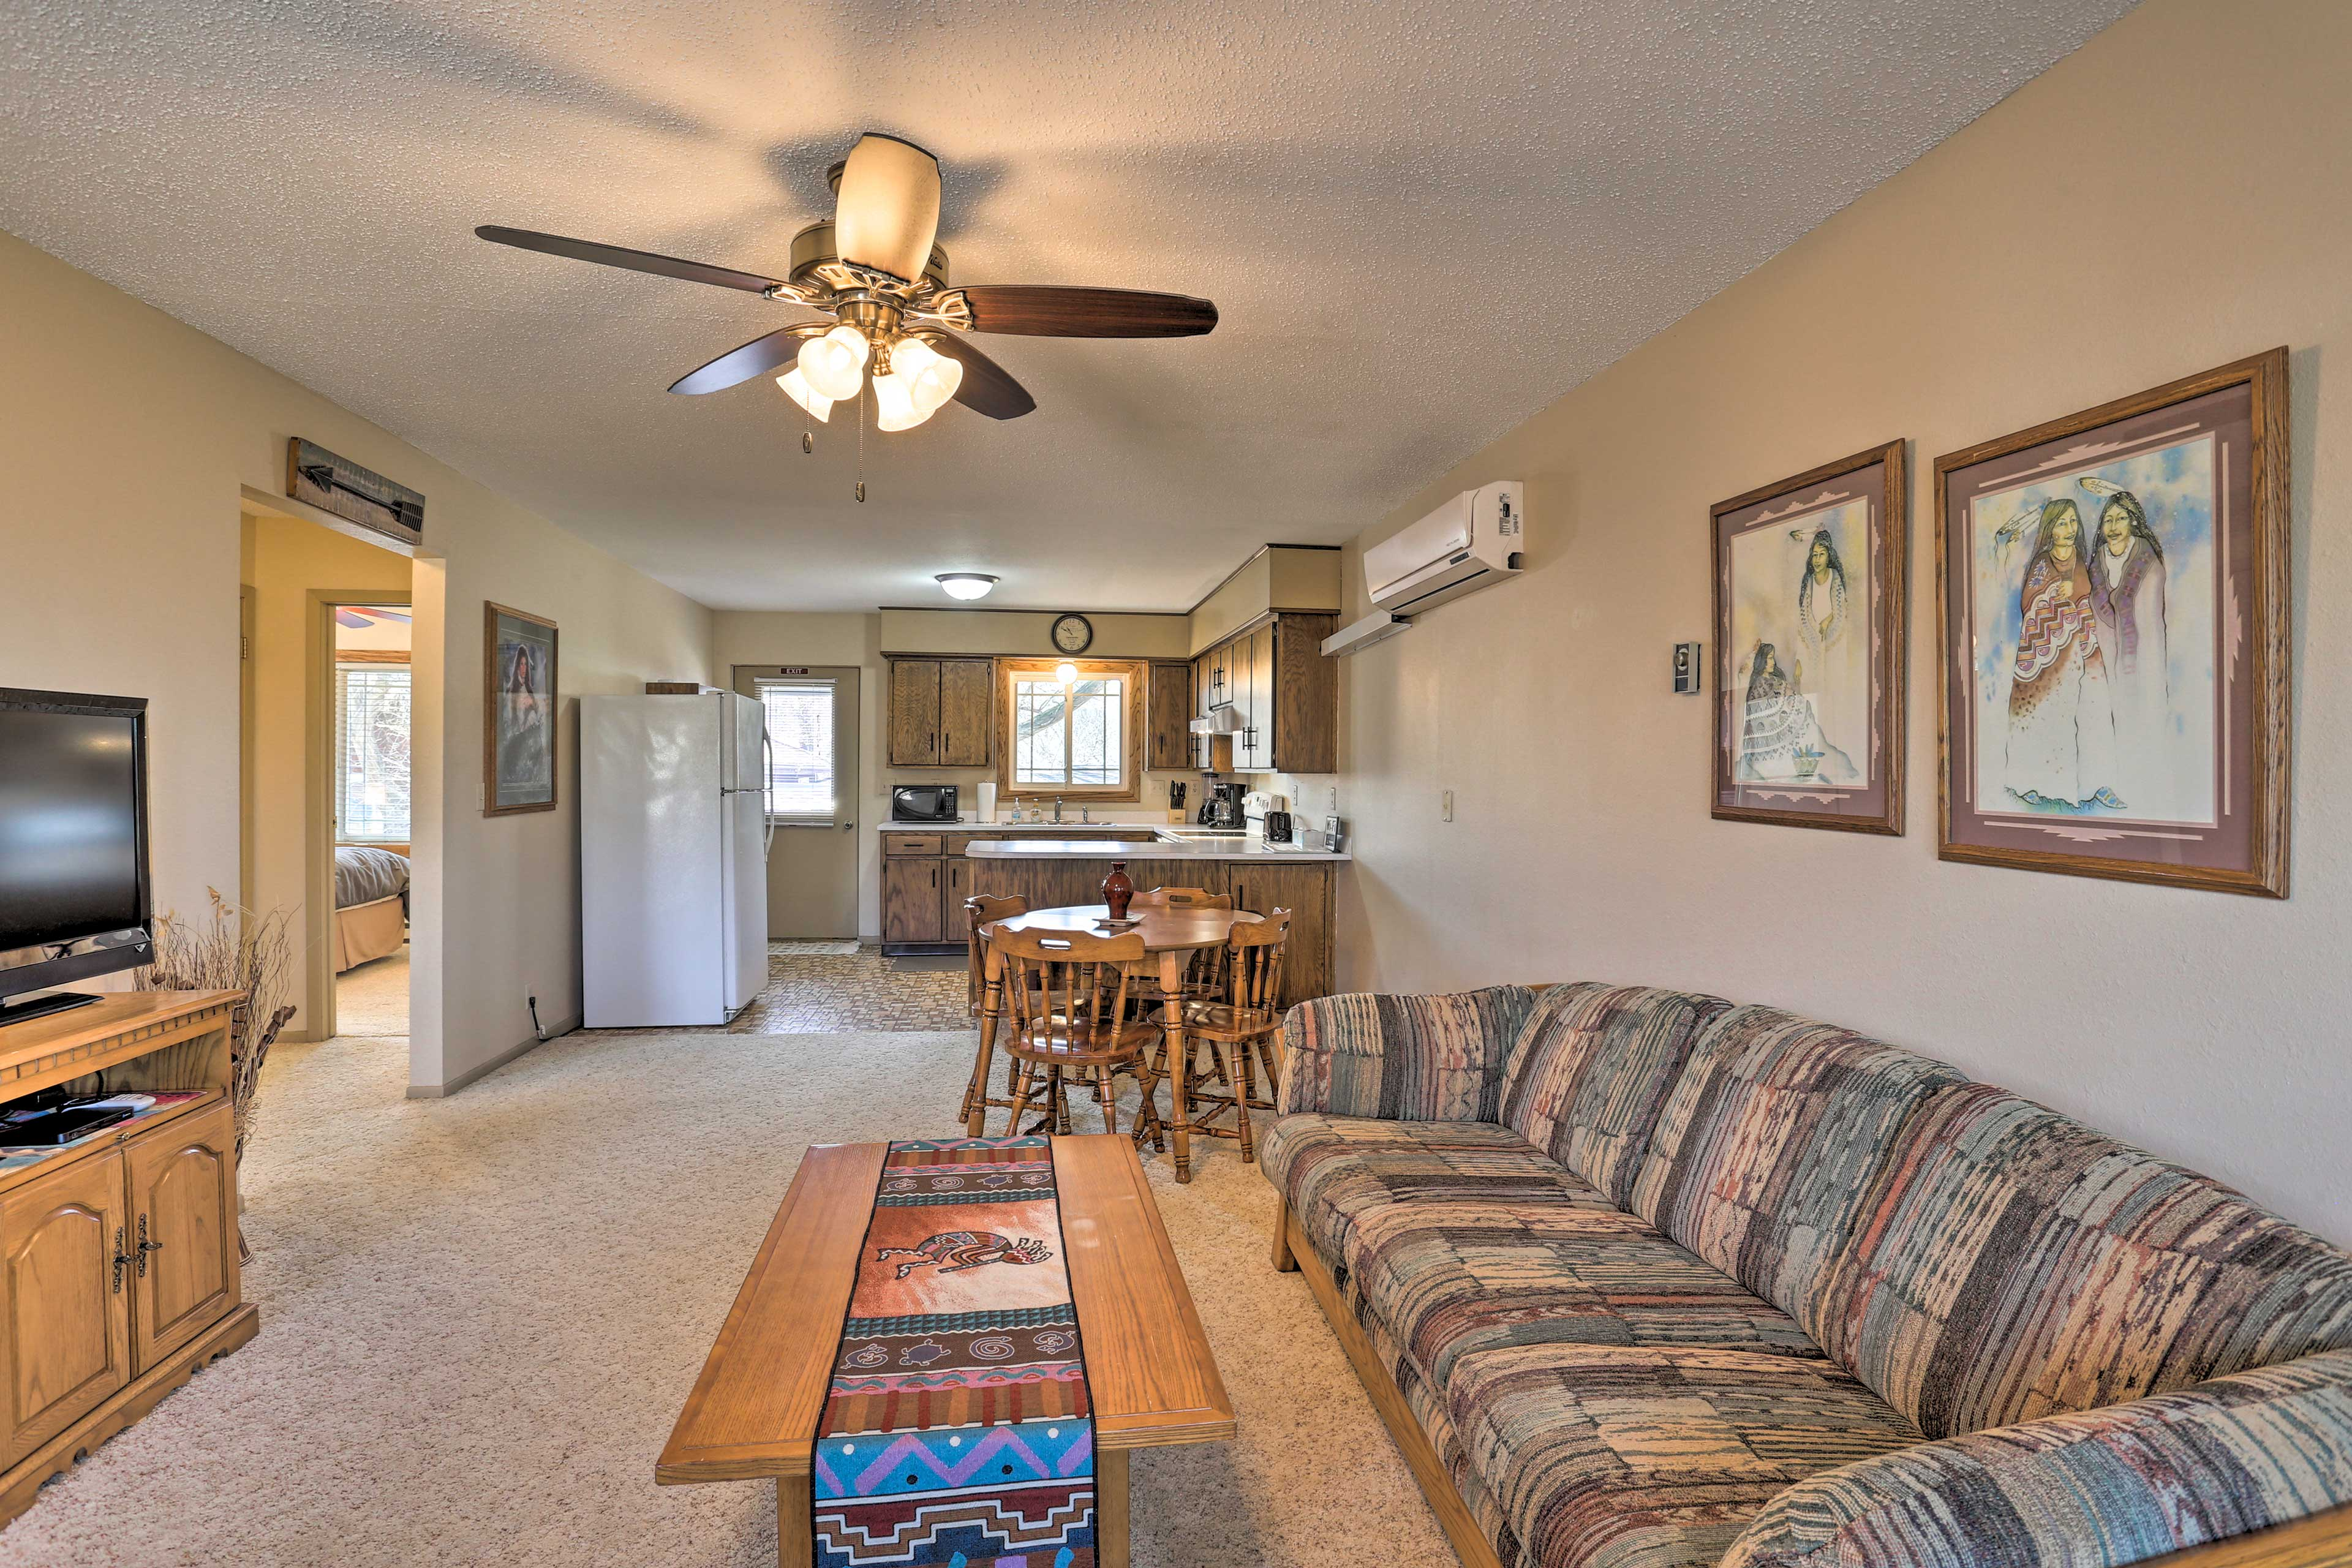 Medora Vacation Rental Condo | 2BR | 1BA | 900 Sq Ft | Stairs Required